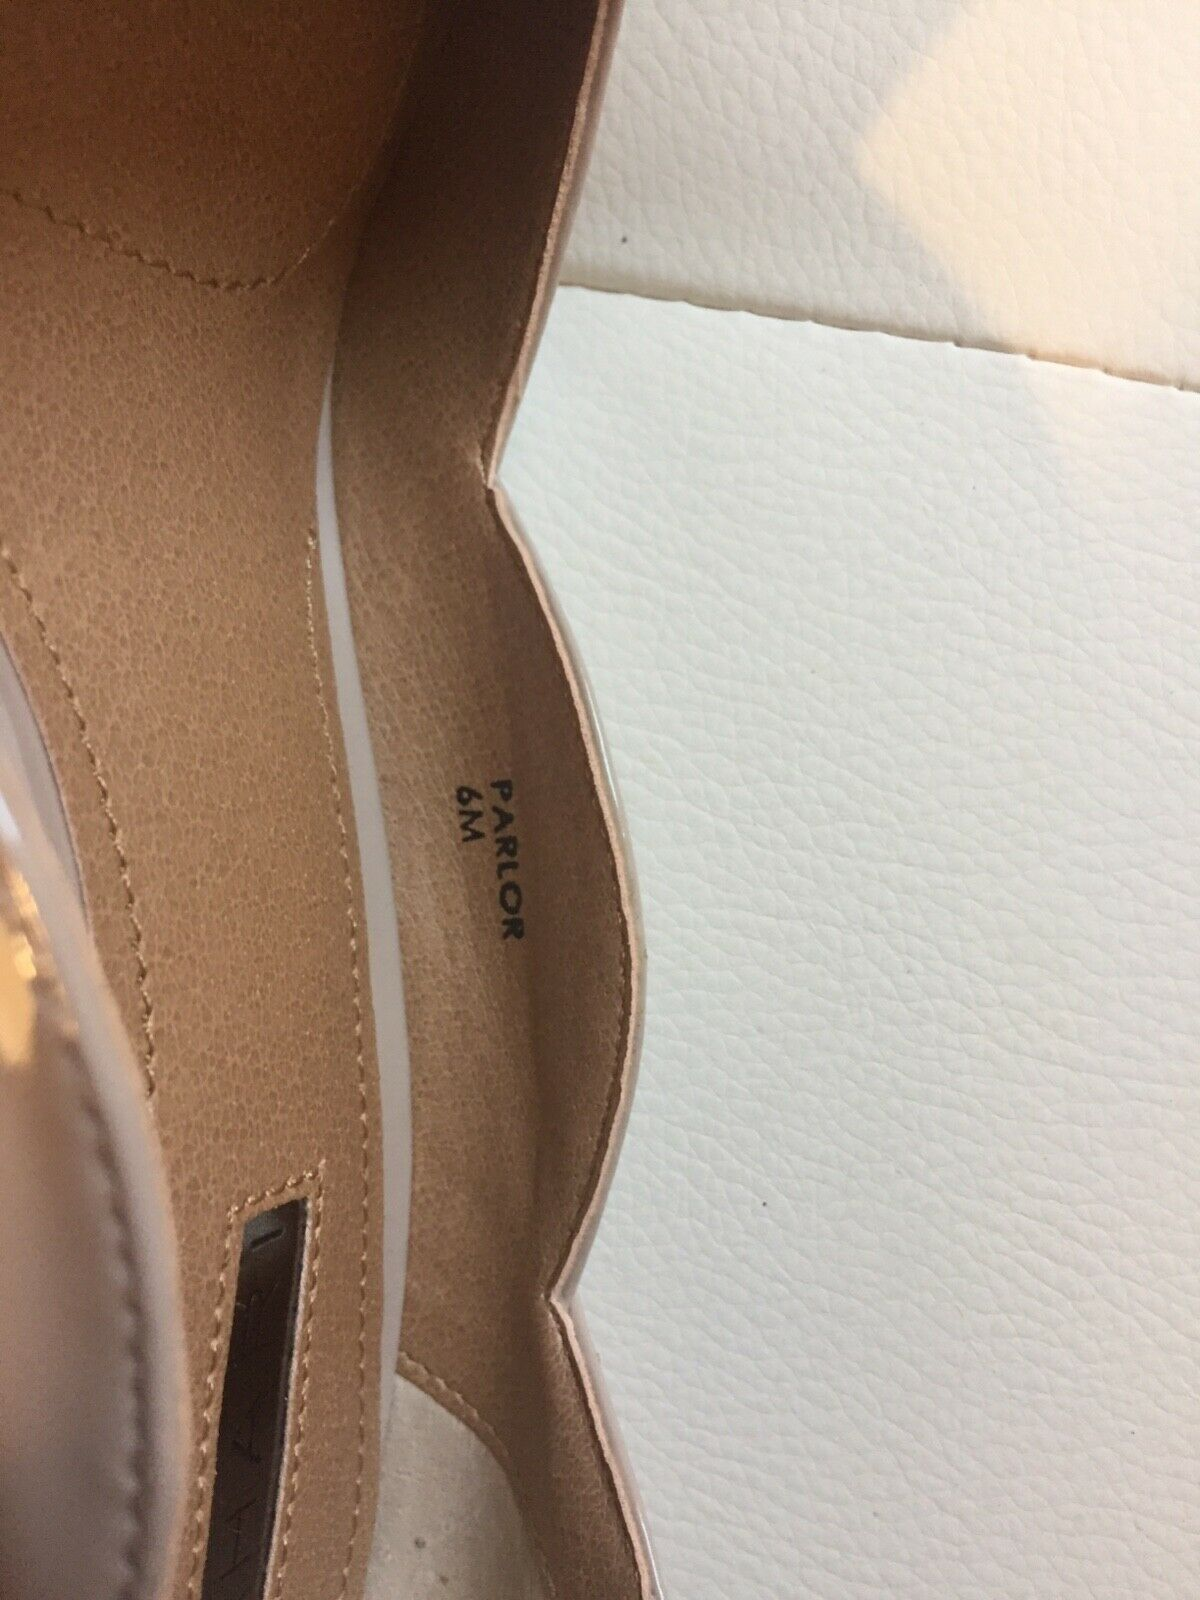 Tahari Brand New with box beige high heels shoes shoes shoes ,size 6 4fb00a